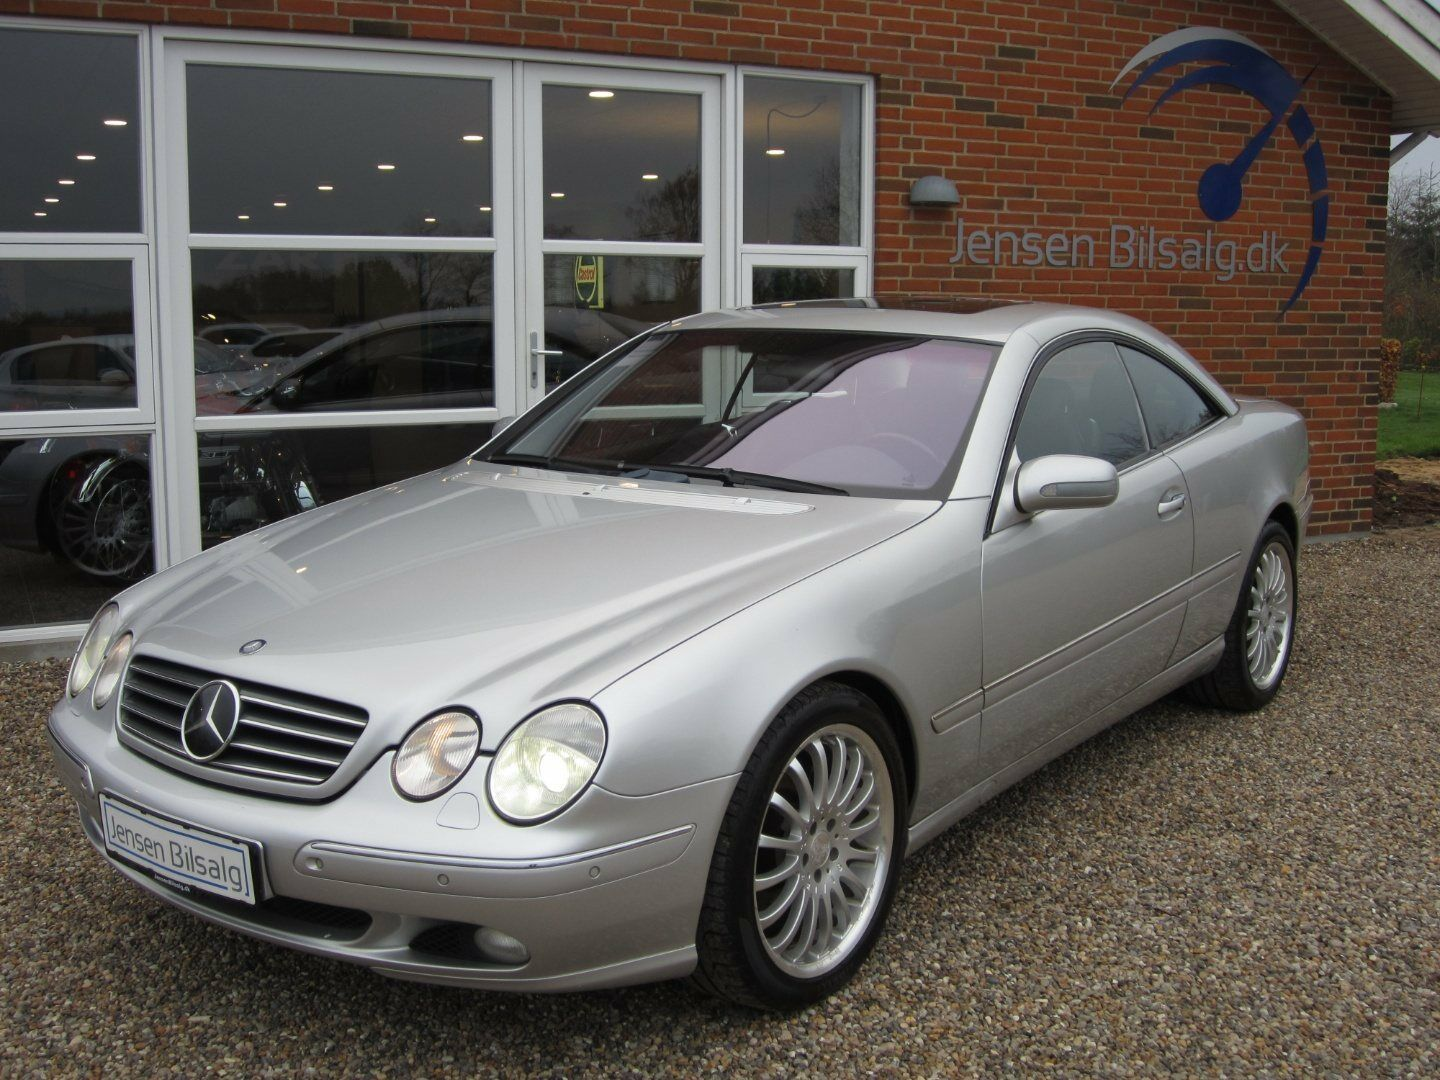 Mercedes CL500 5,0 aut. 2d